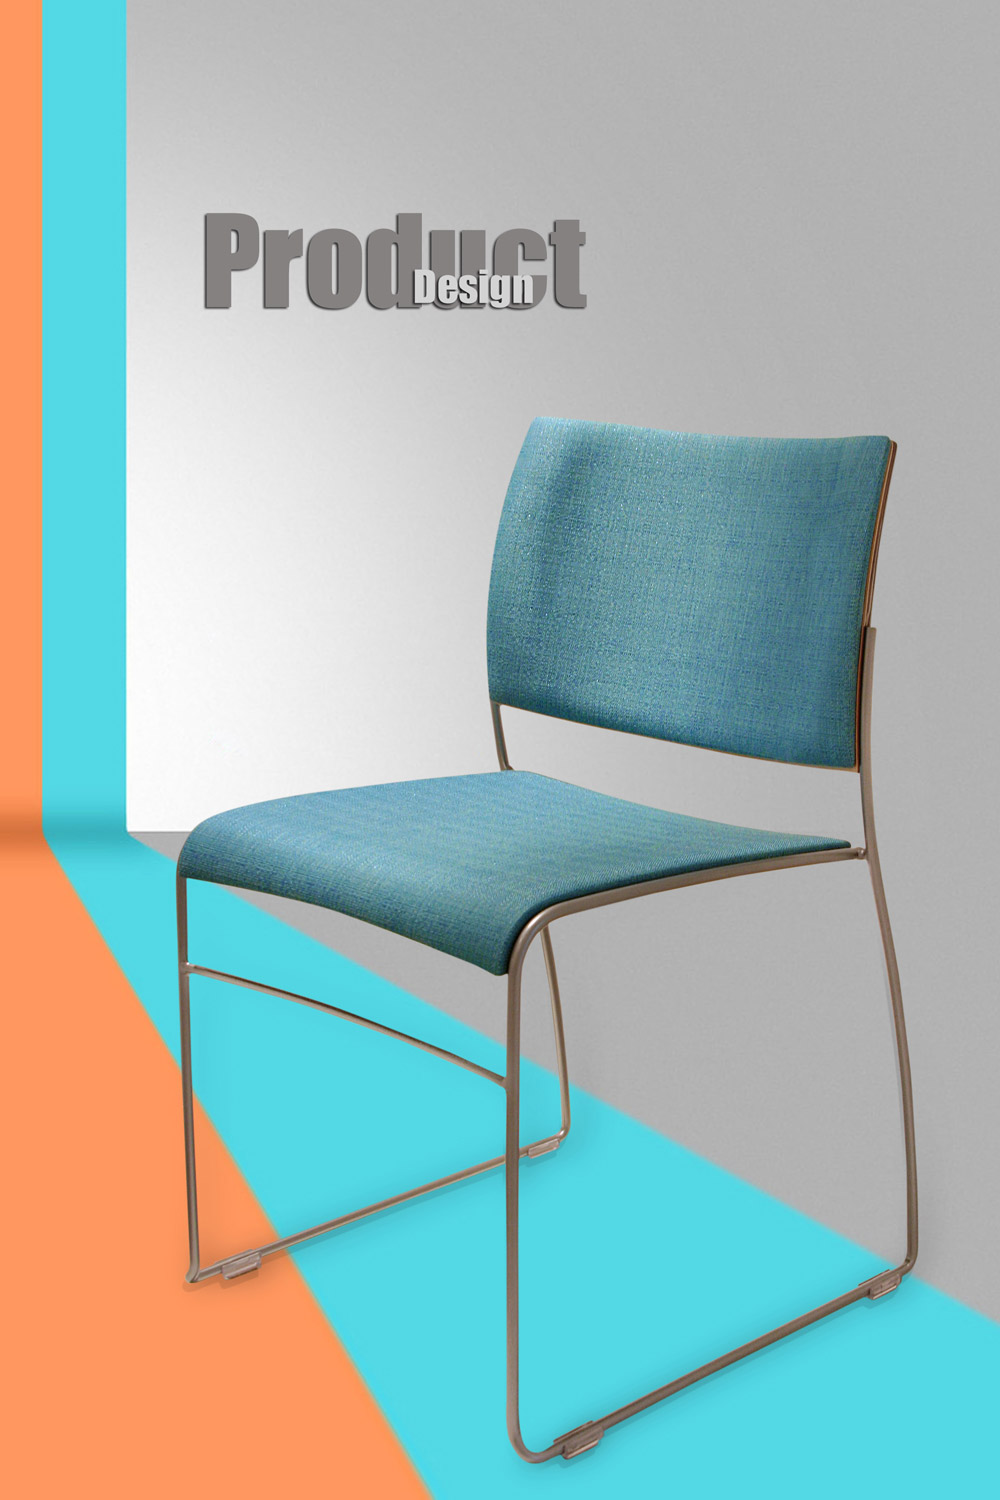 Product design and background removal service with color correction